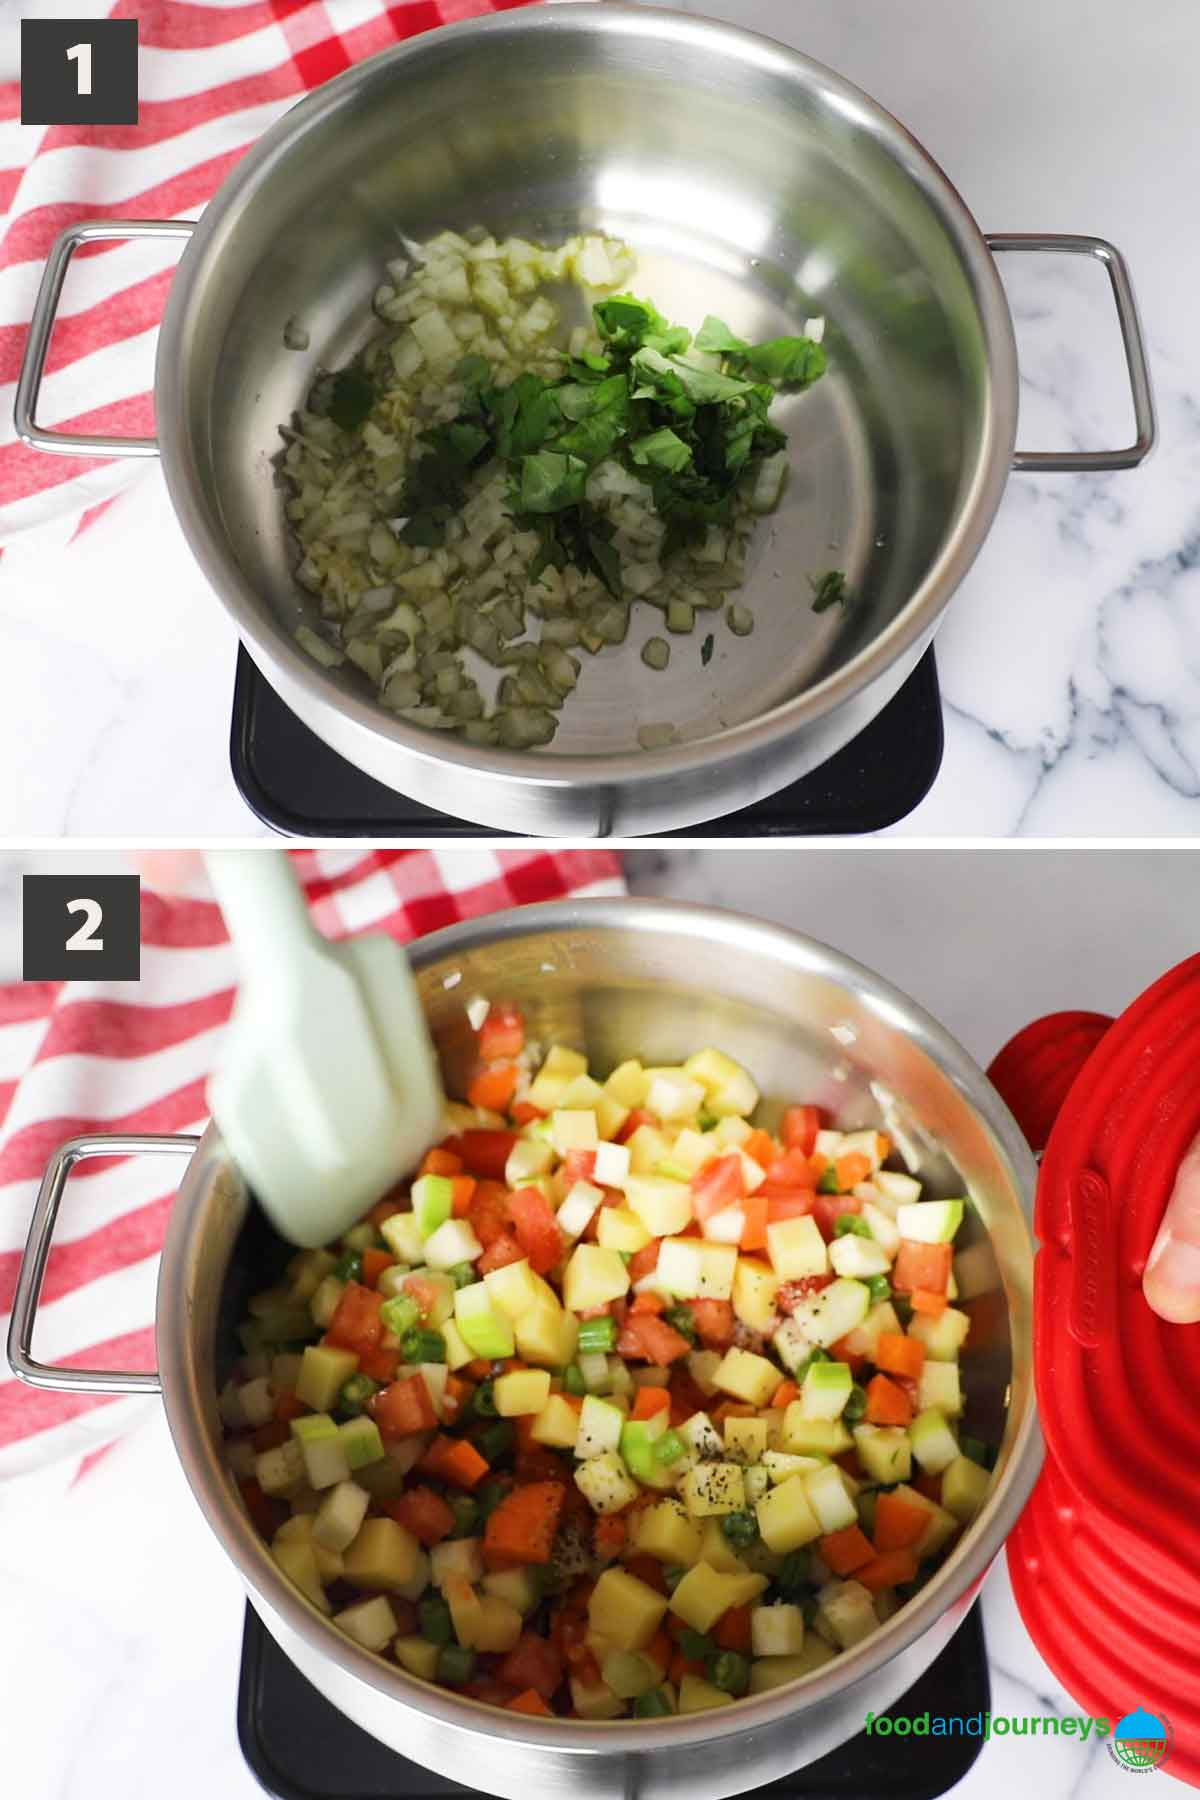 Updated first part of a collage of images showing the step by step process of making minestrone alla milanese.